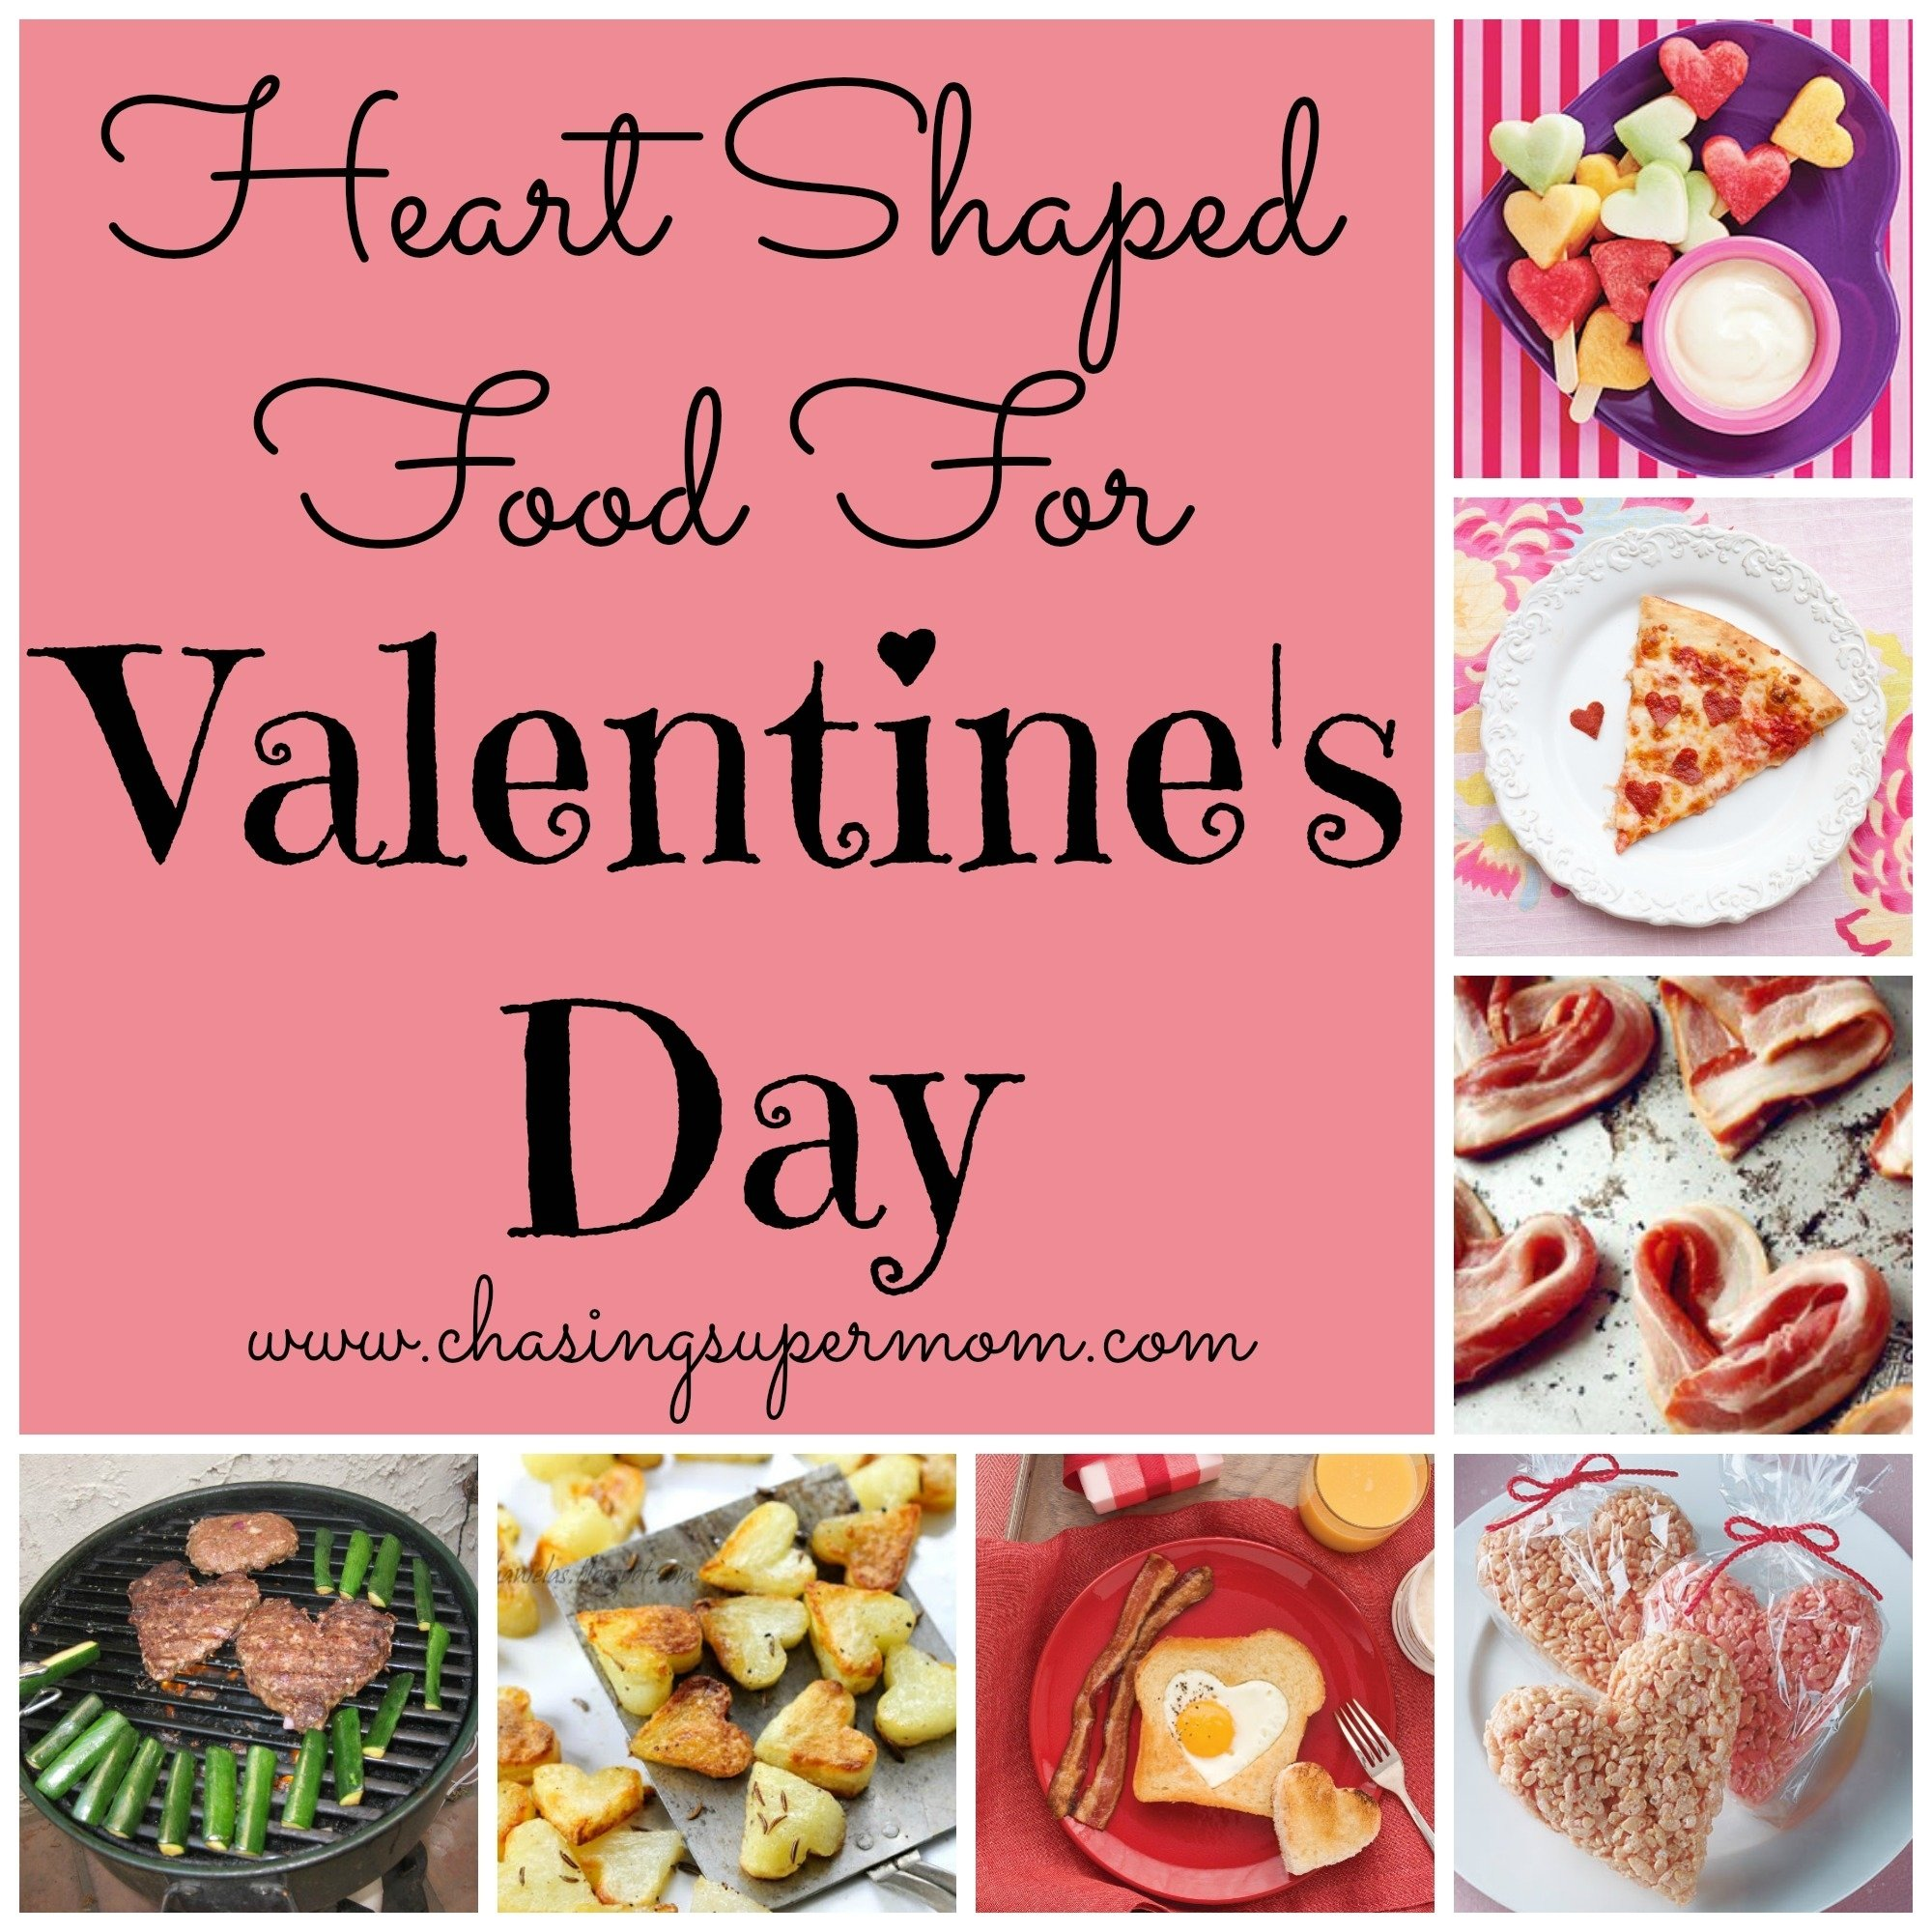 10 Best Valentines Day Ideas For Family valentines day food ideas heart shaped food chasing supermom 2020